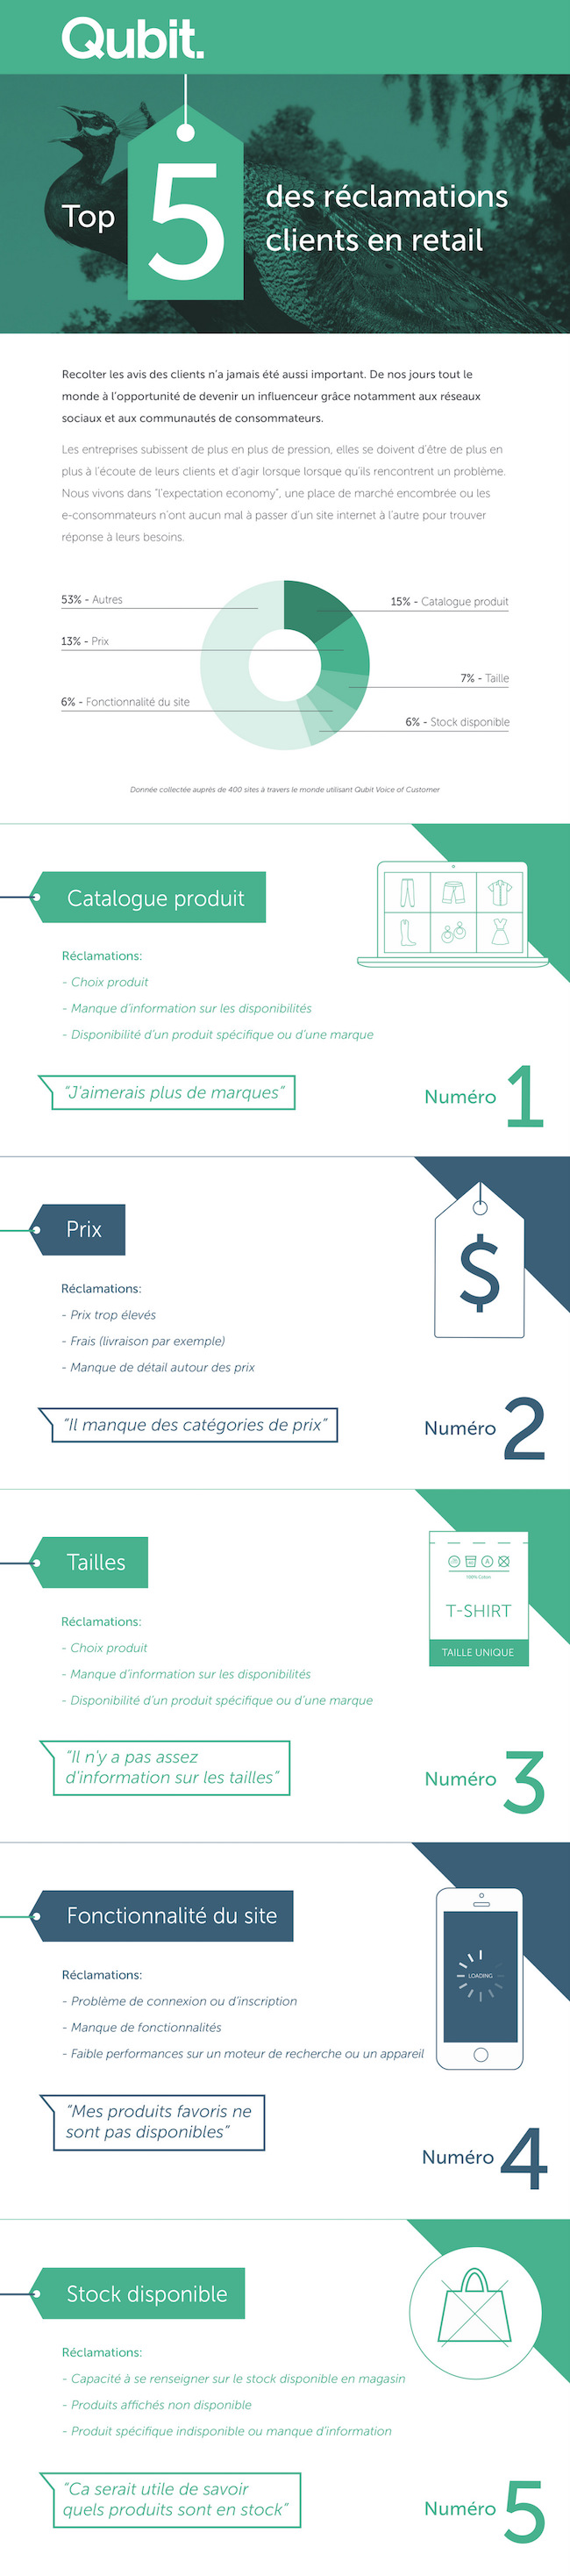 VOC Retail Infographic_Final French Copy